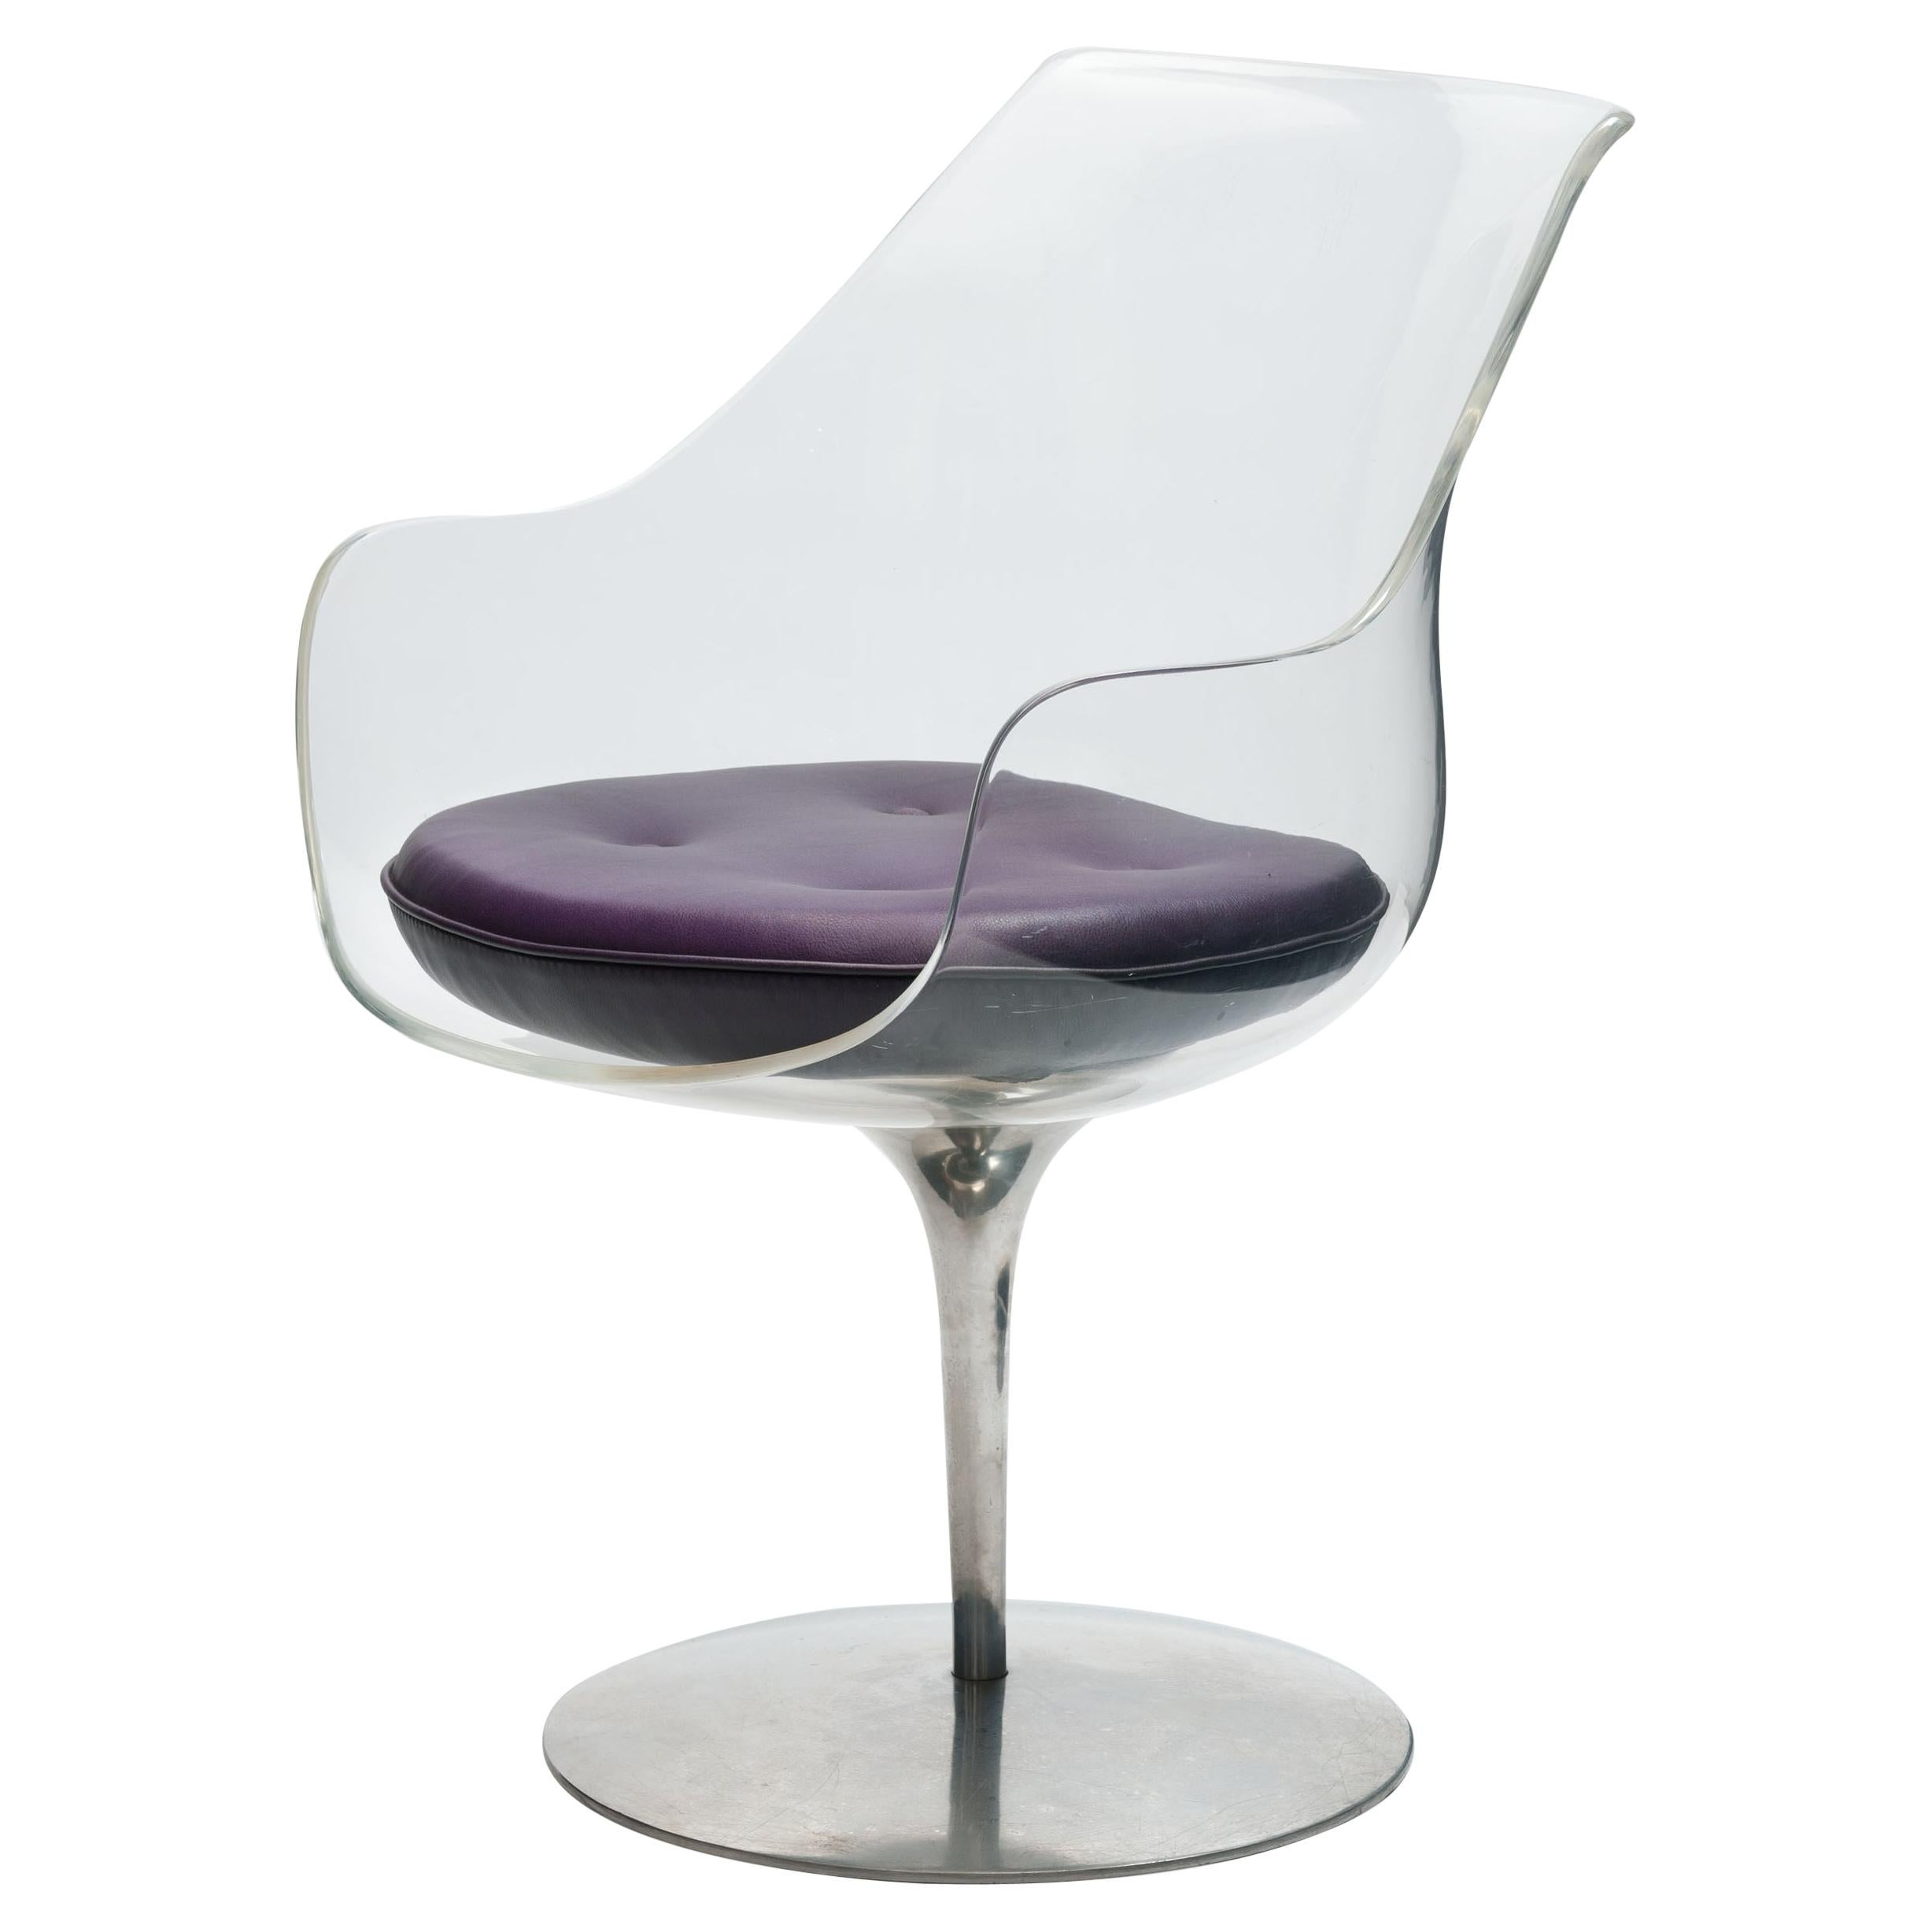 Lucite 'Champagne' Chair by Estelle & Erwin Laverne